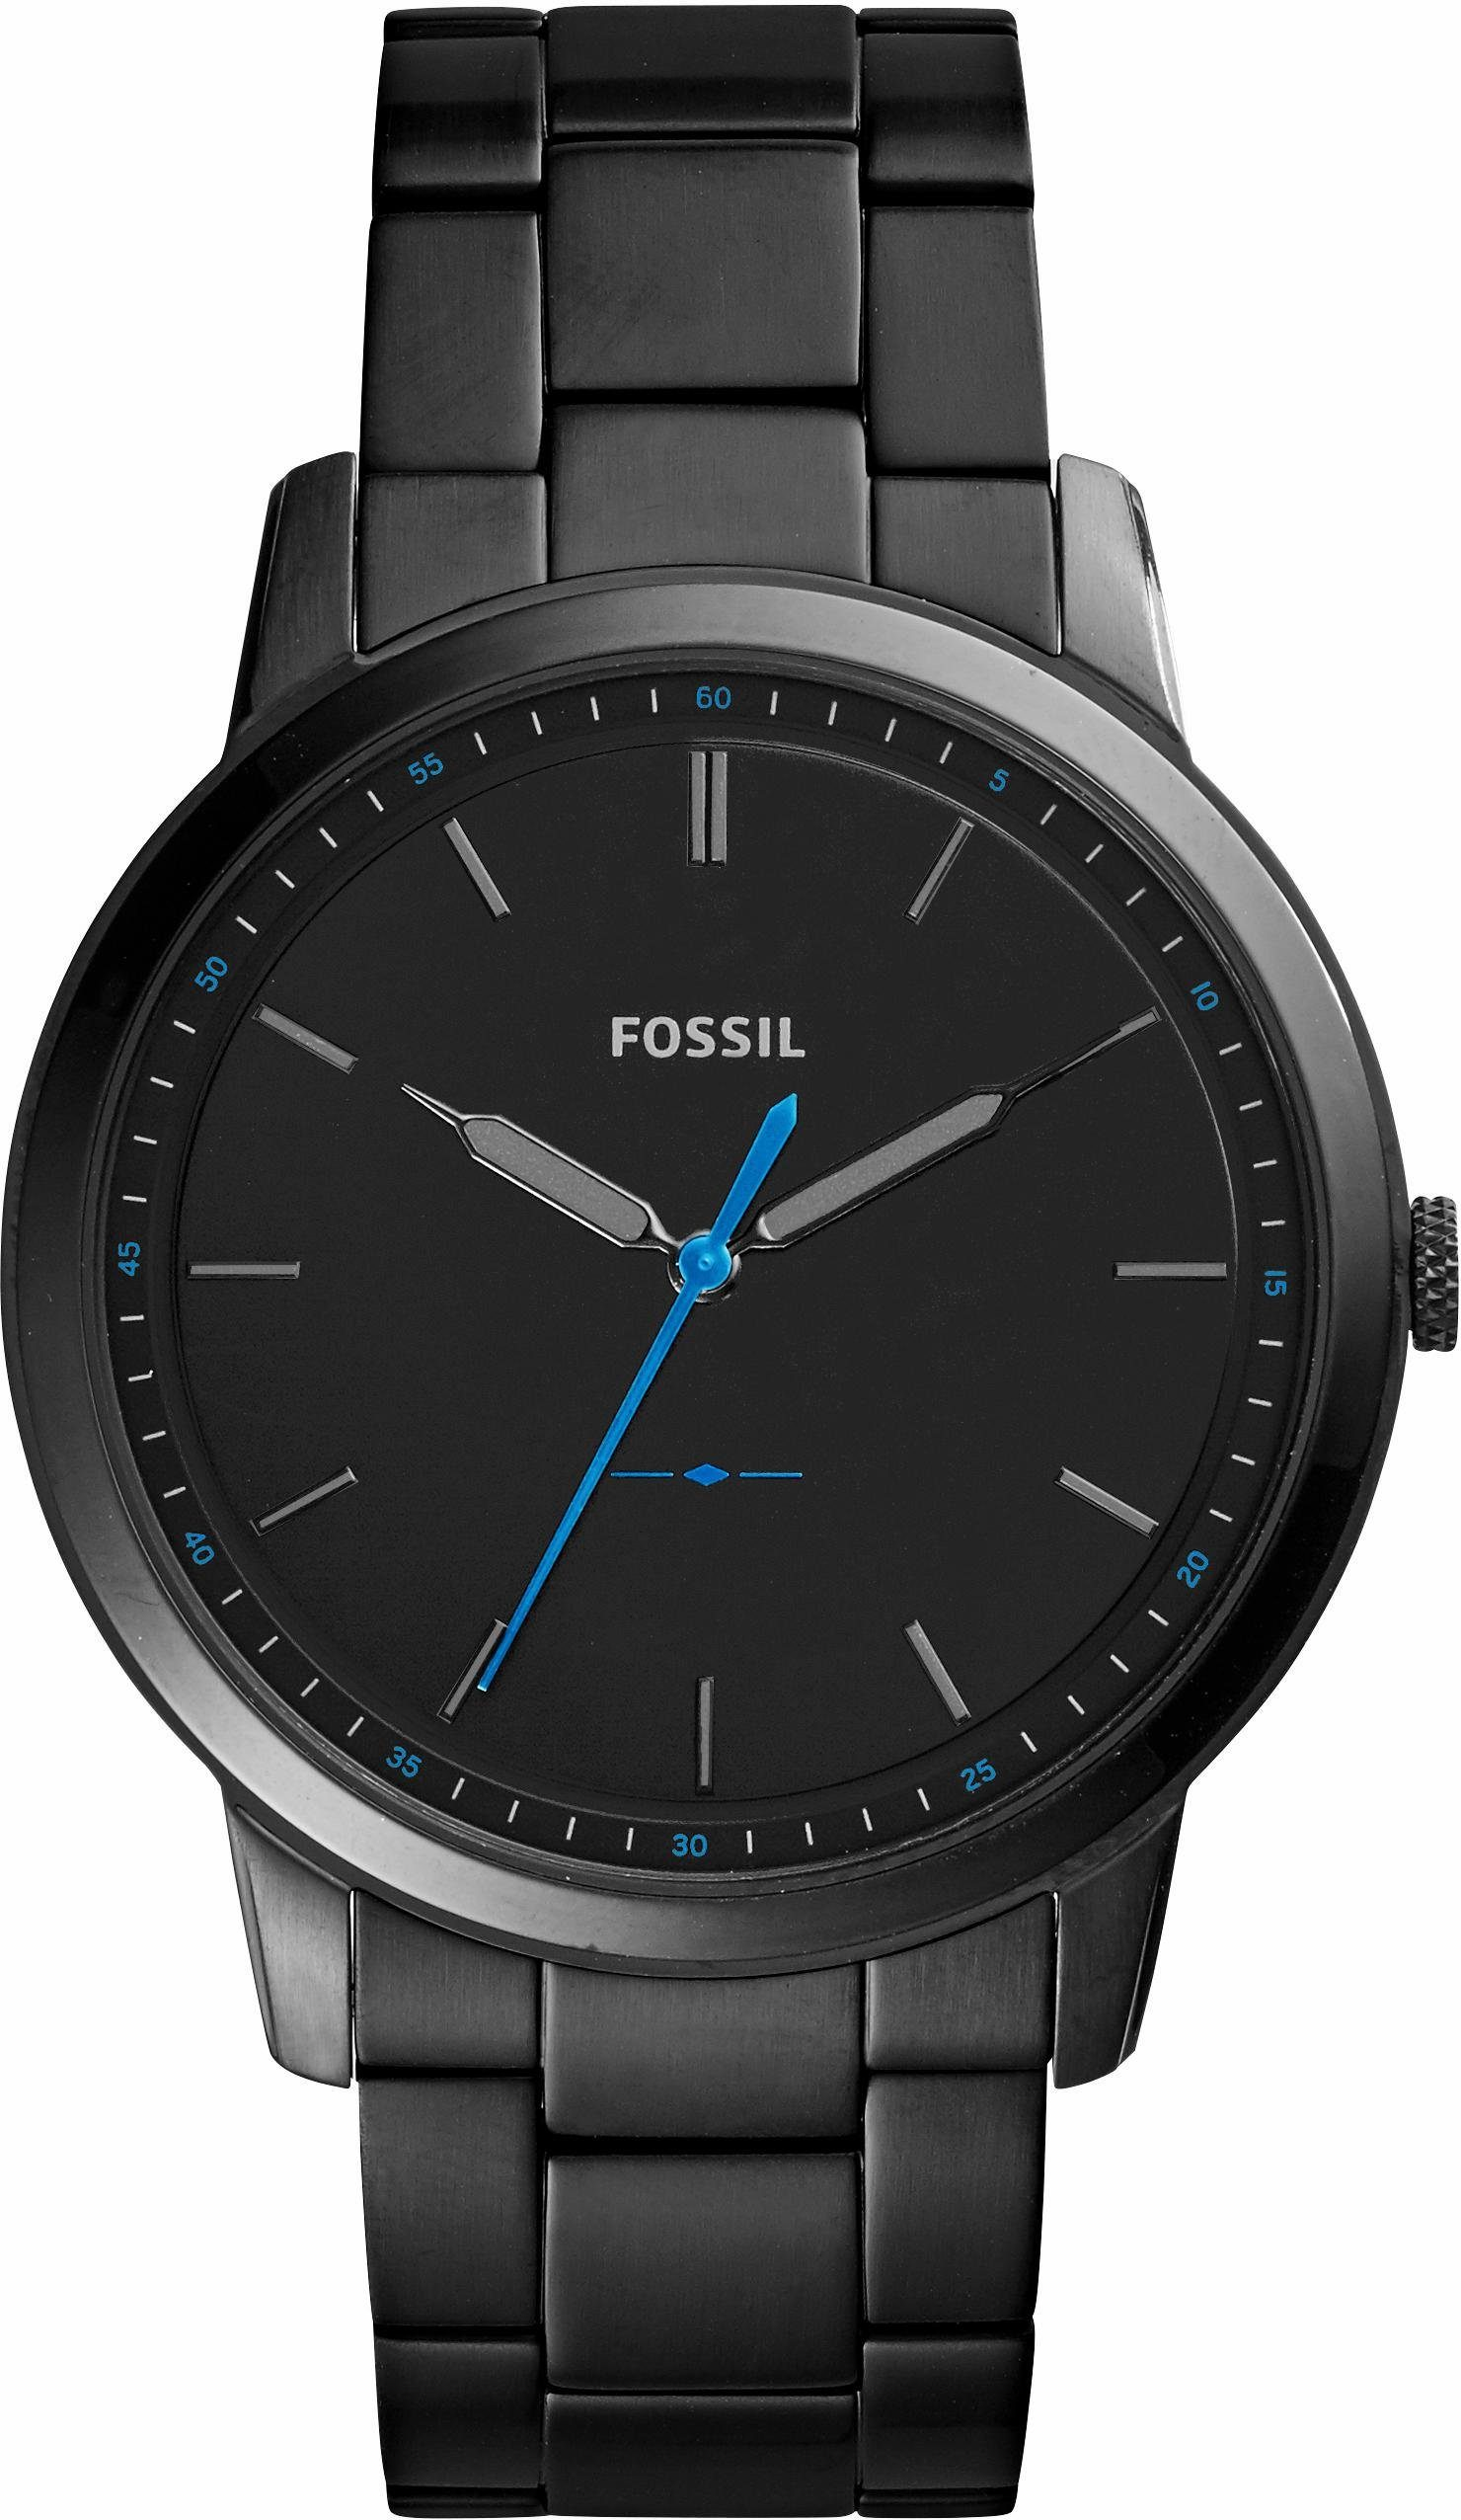 Fossil Quarzuhr »THE MINIMALIST 3H, FS5308«